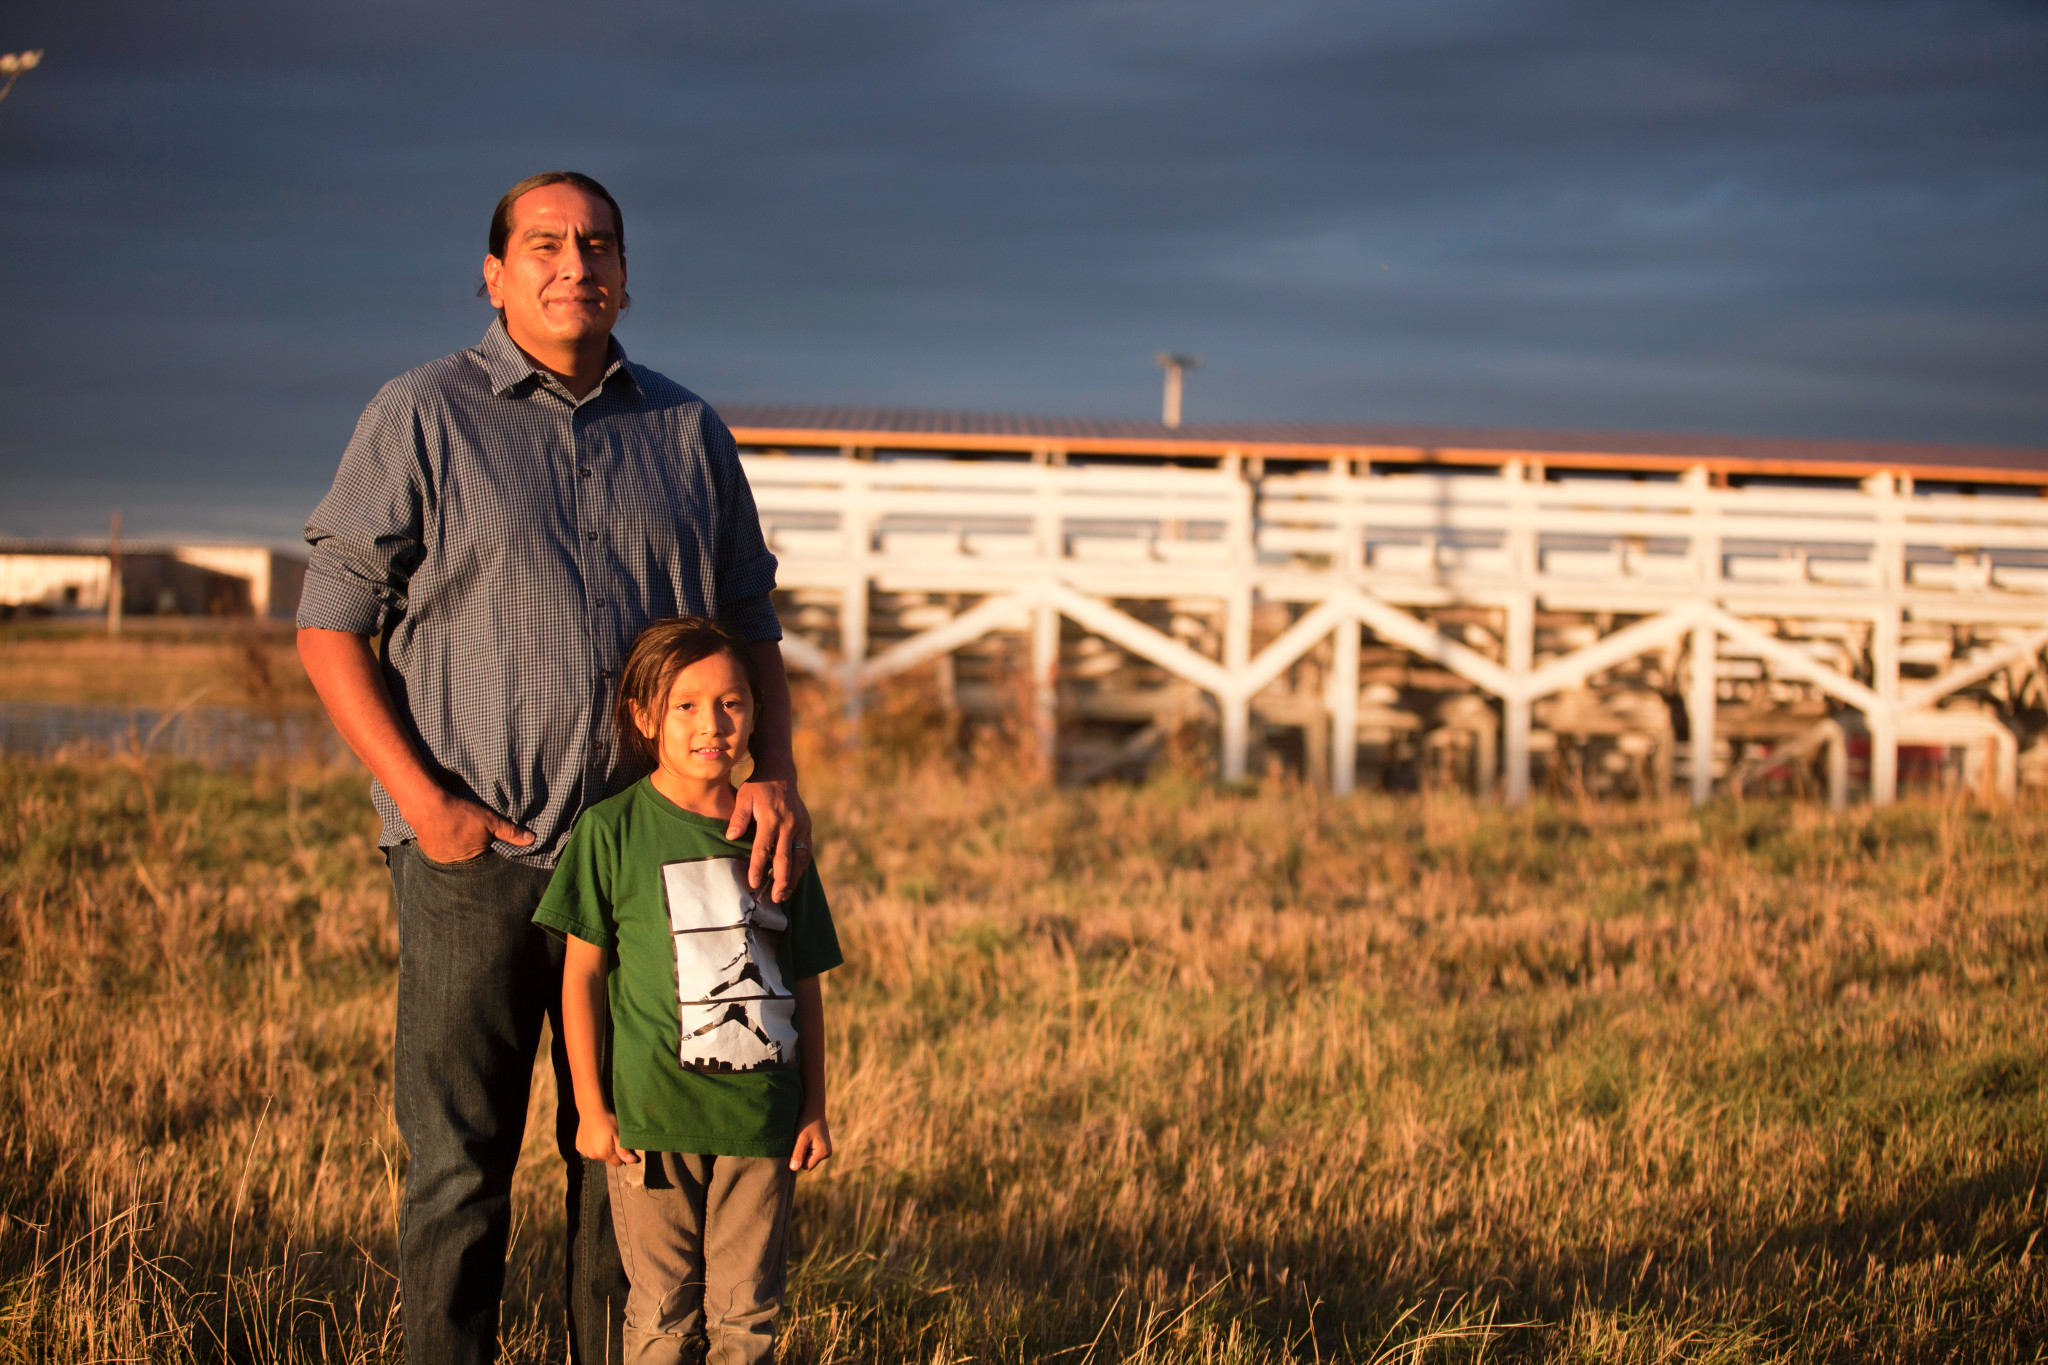 A middle-aged man and a young boy stand in a grassy field, both look off into the distance with a serious expression; a white wooden barn is in the background.